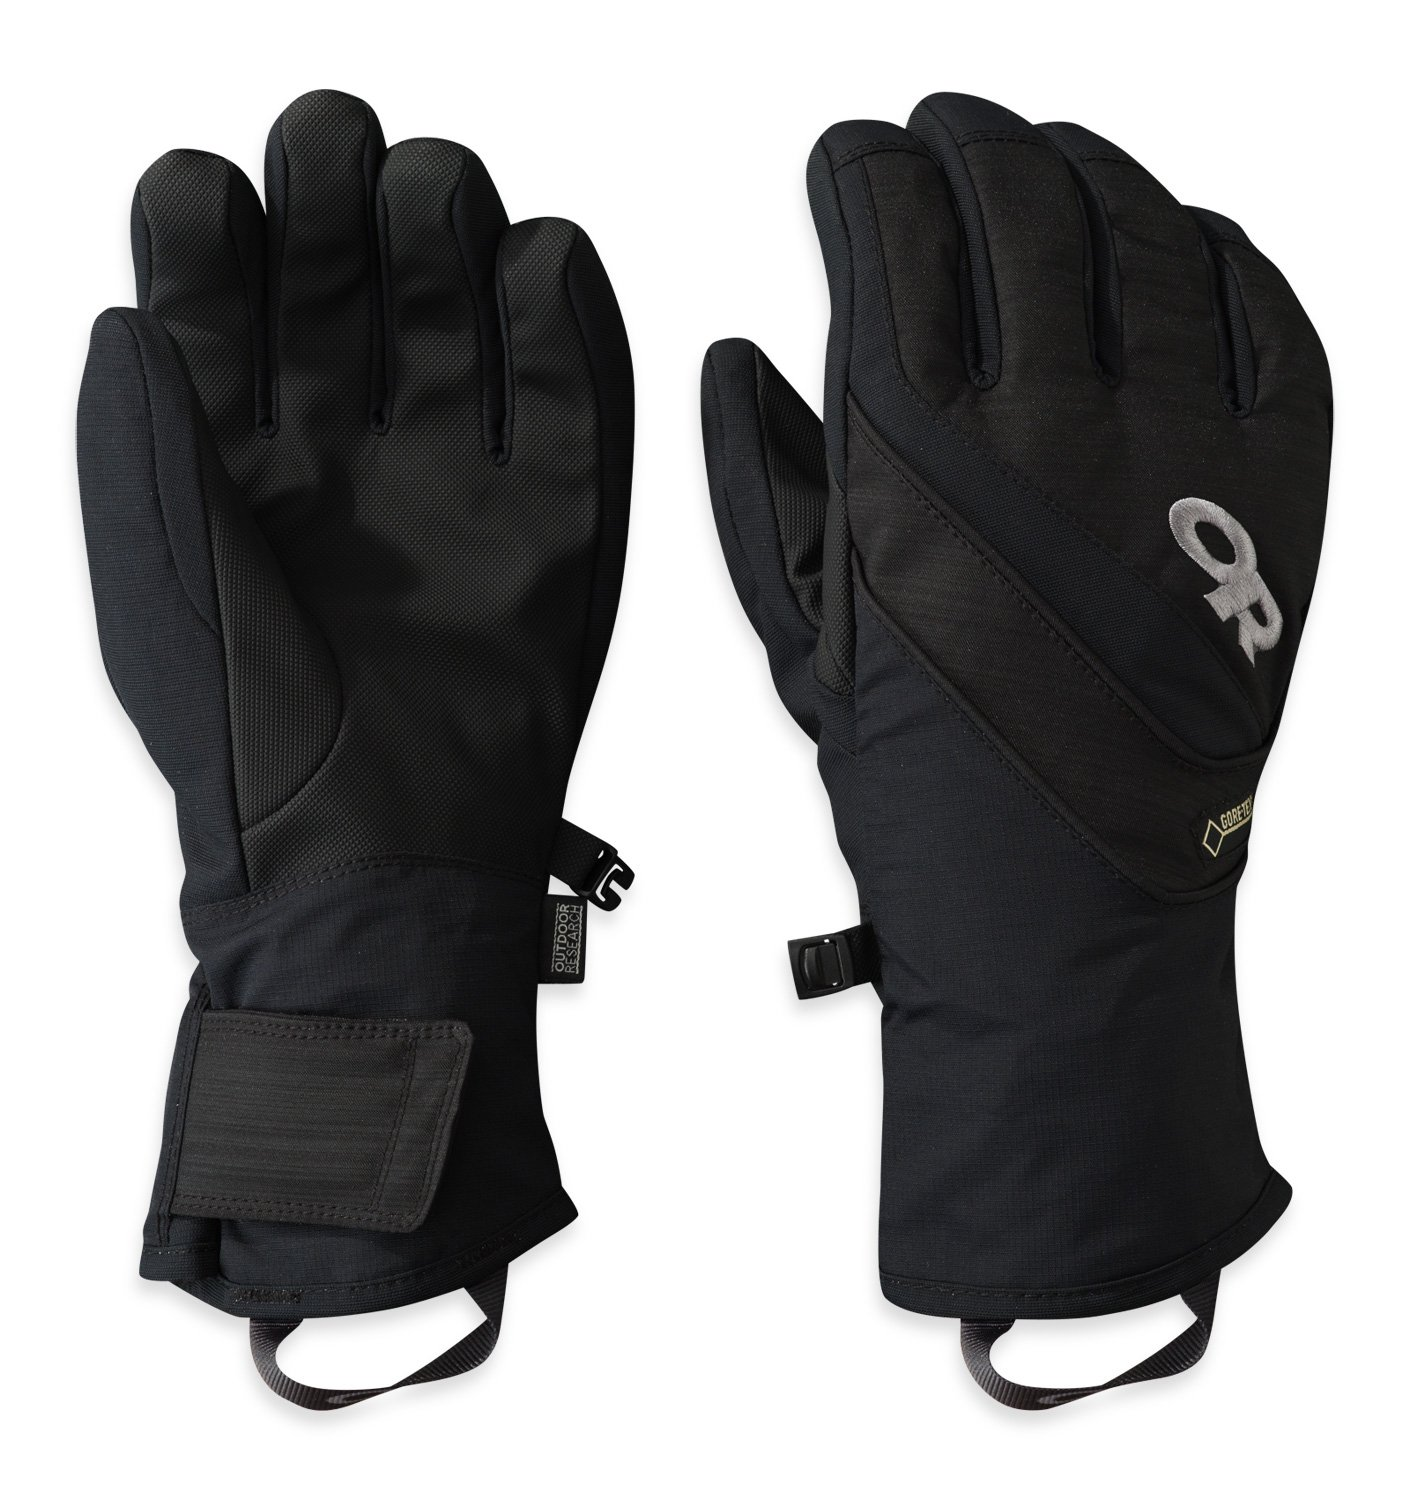 Outdoor Research Women's Centurion Gloves, All Black, Small